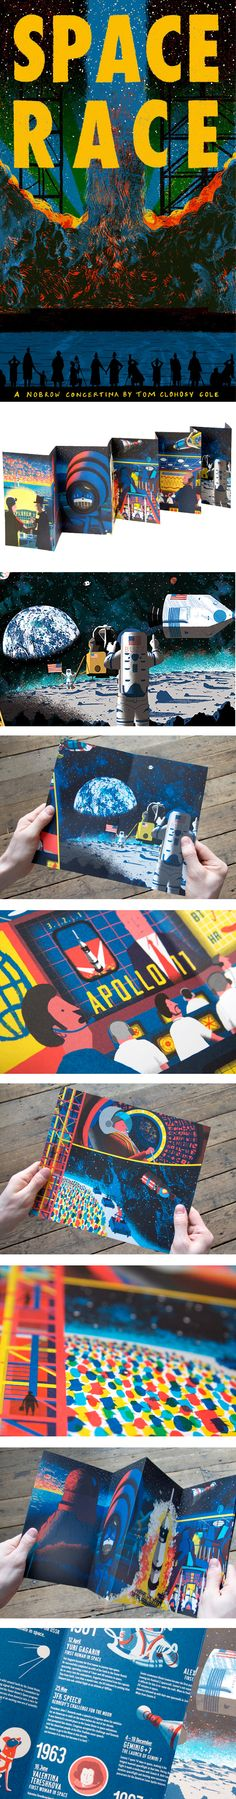 Space Race by Tom Clohosy Cole is a stunning picture book lovingly recreating the American astronauts' and Russian cosmonauts' race to the moon landing: from Yuri Gagarin to Neil Armstrong and NASA mission control. Like the other concertinas in Nobrow's Leporello series, this beautiful book cover design folds out into a single long, framable art piece! And with a fact sheet on the back, it's a great educational book for kids. http://www.beautifulbookcovers.com/space-race-by-tom-clohosy-cole/